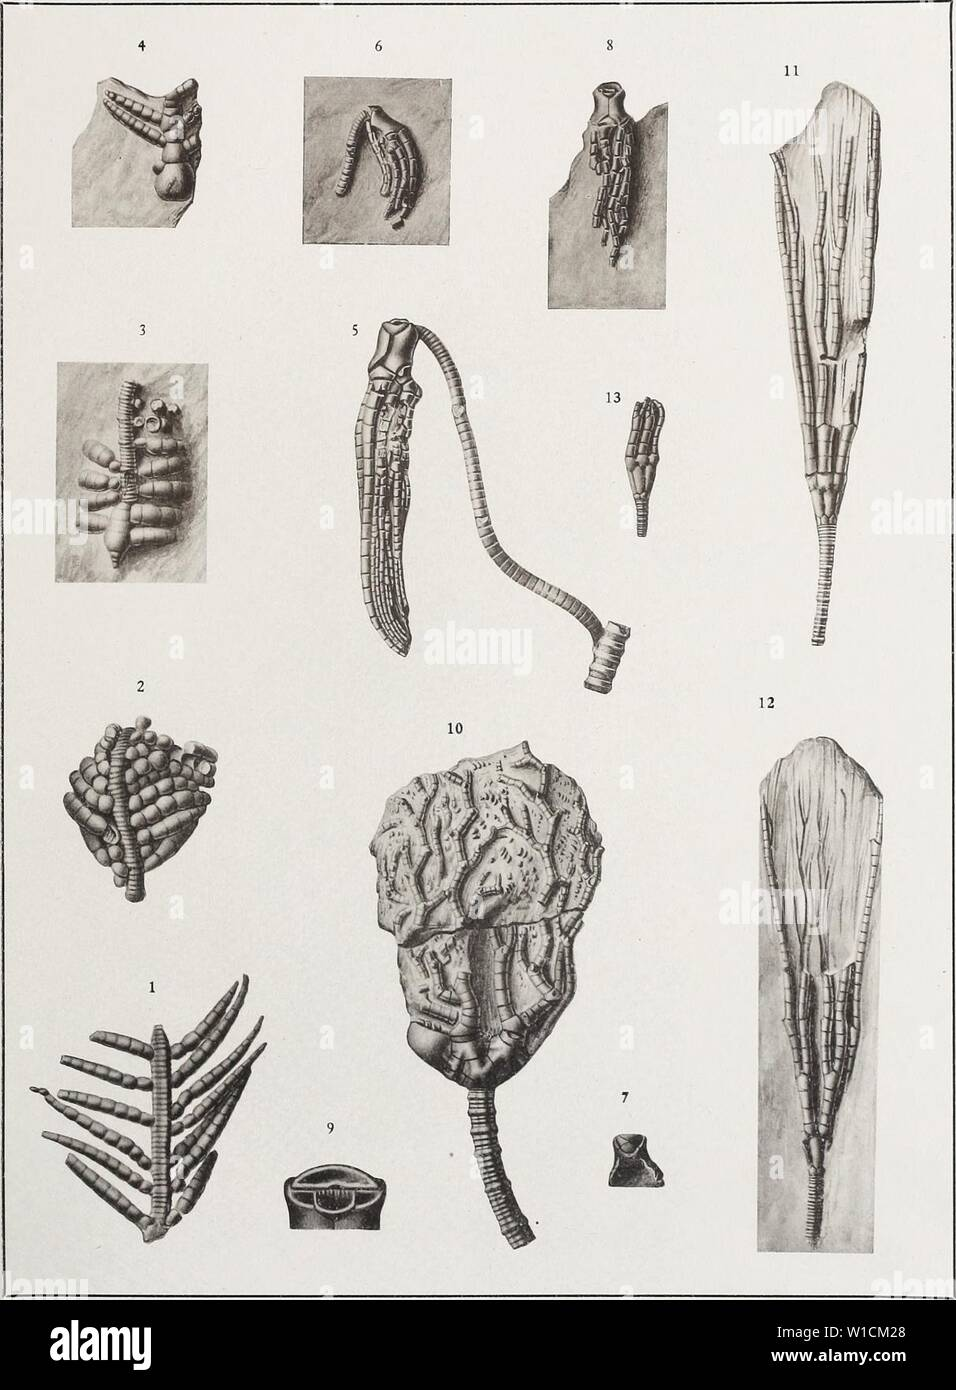 Archive image from page 682 of The Devonian crinoids of the Stock Photo